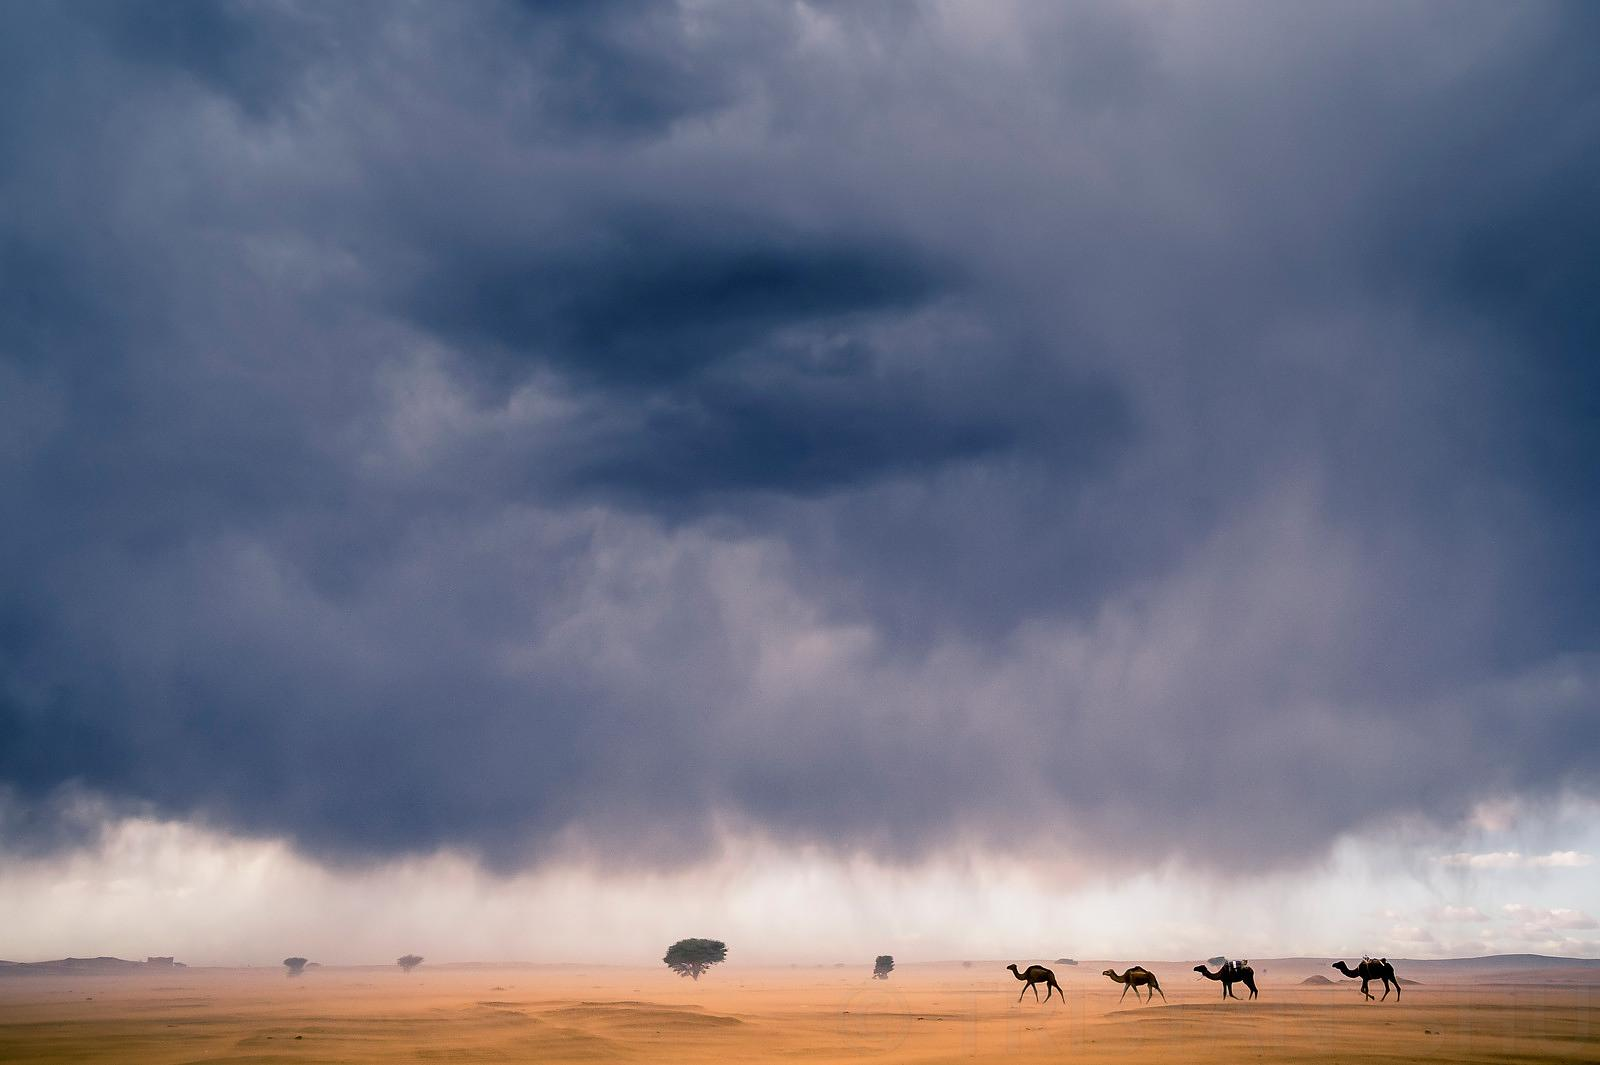 Camels under the storm